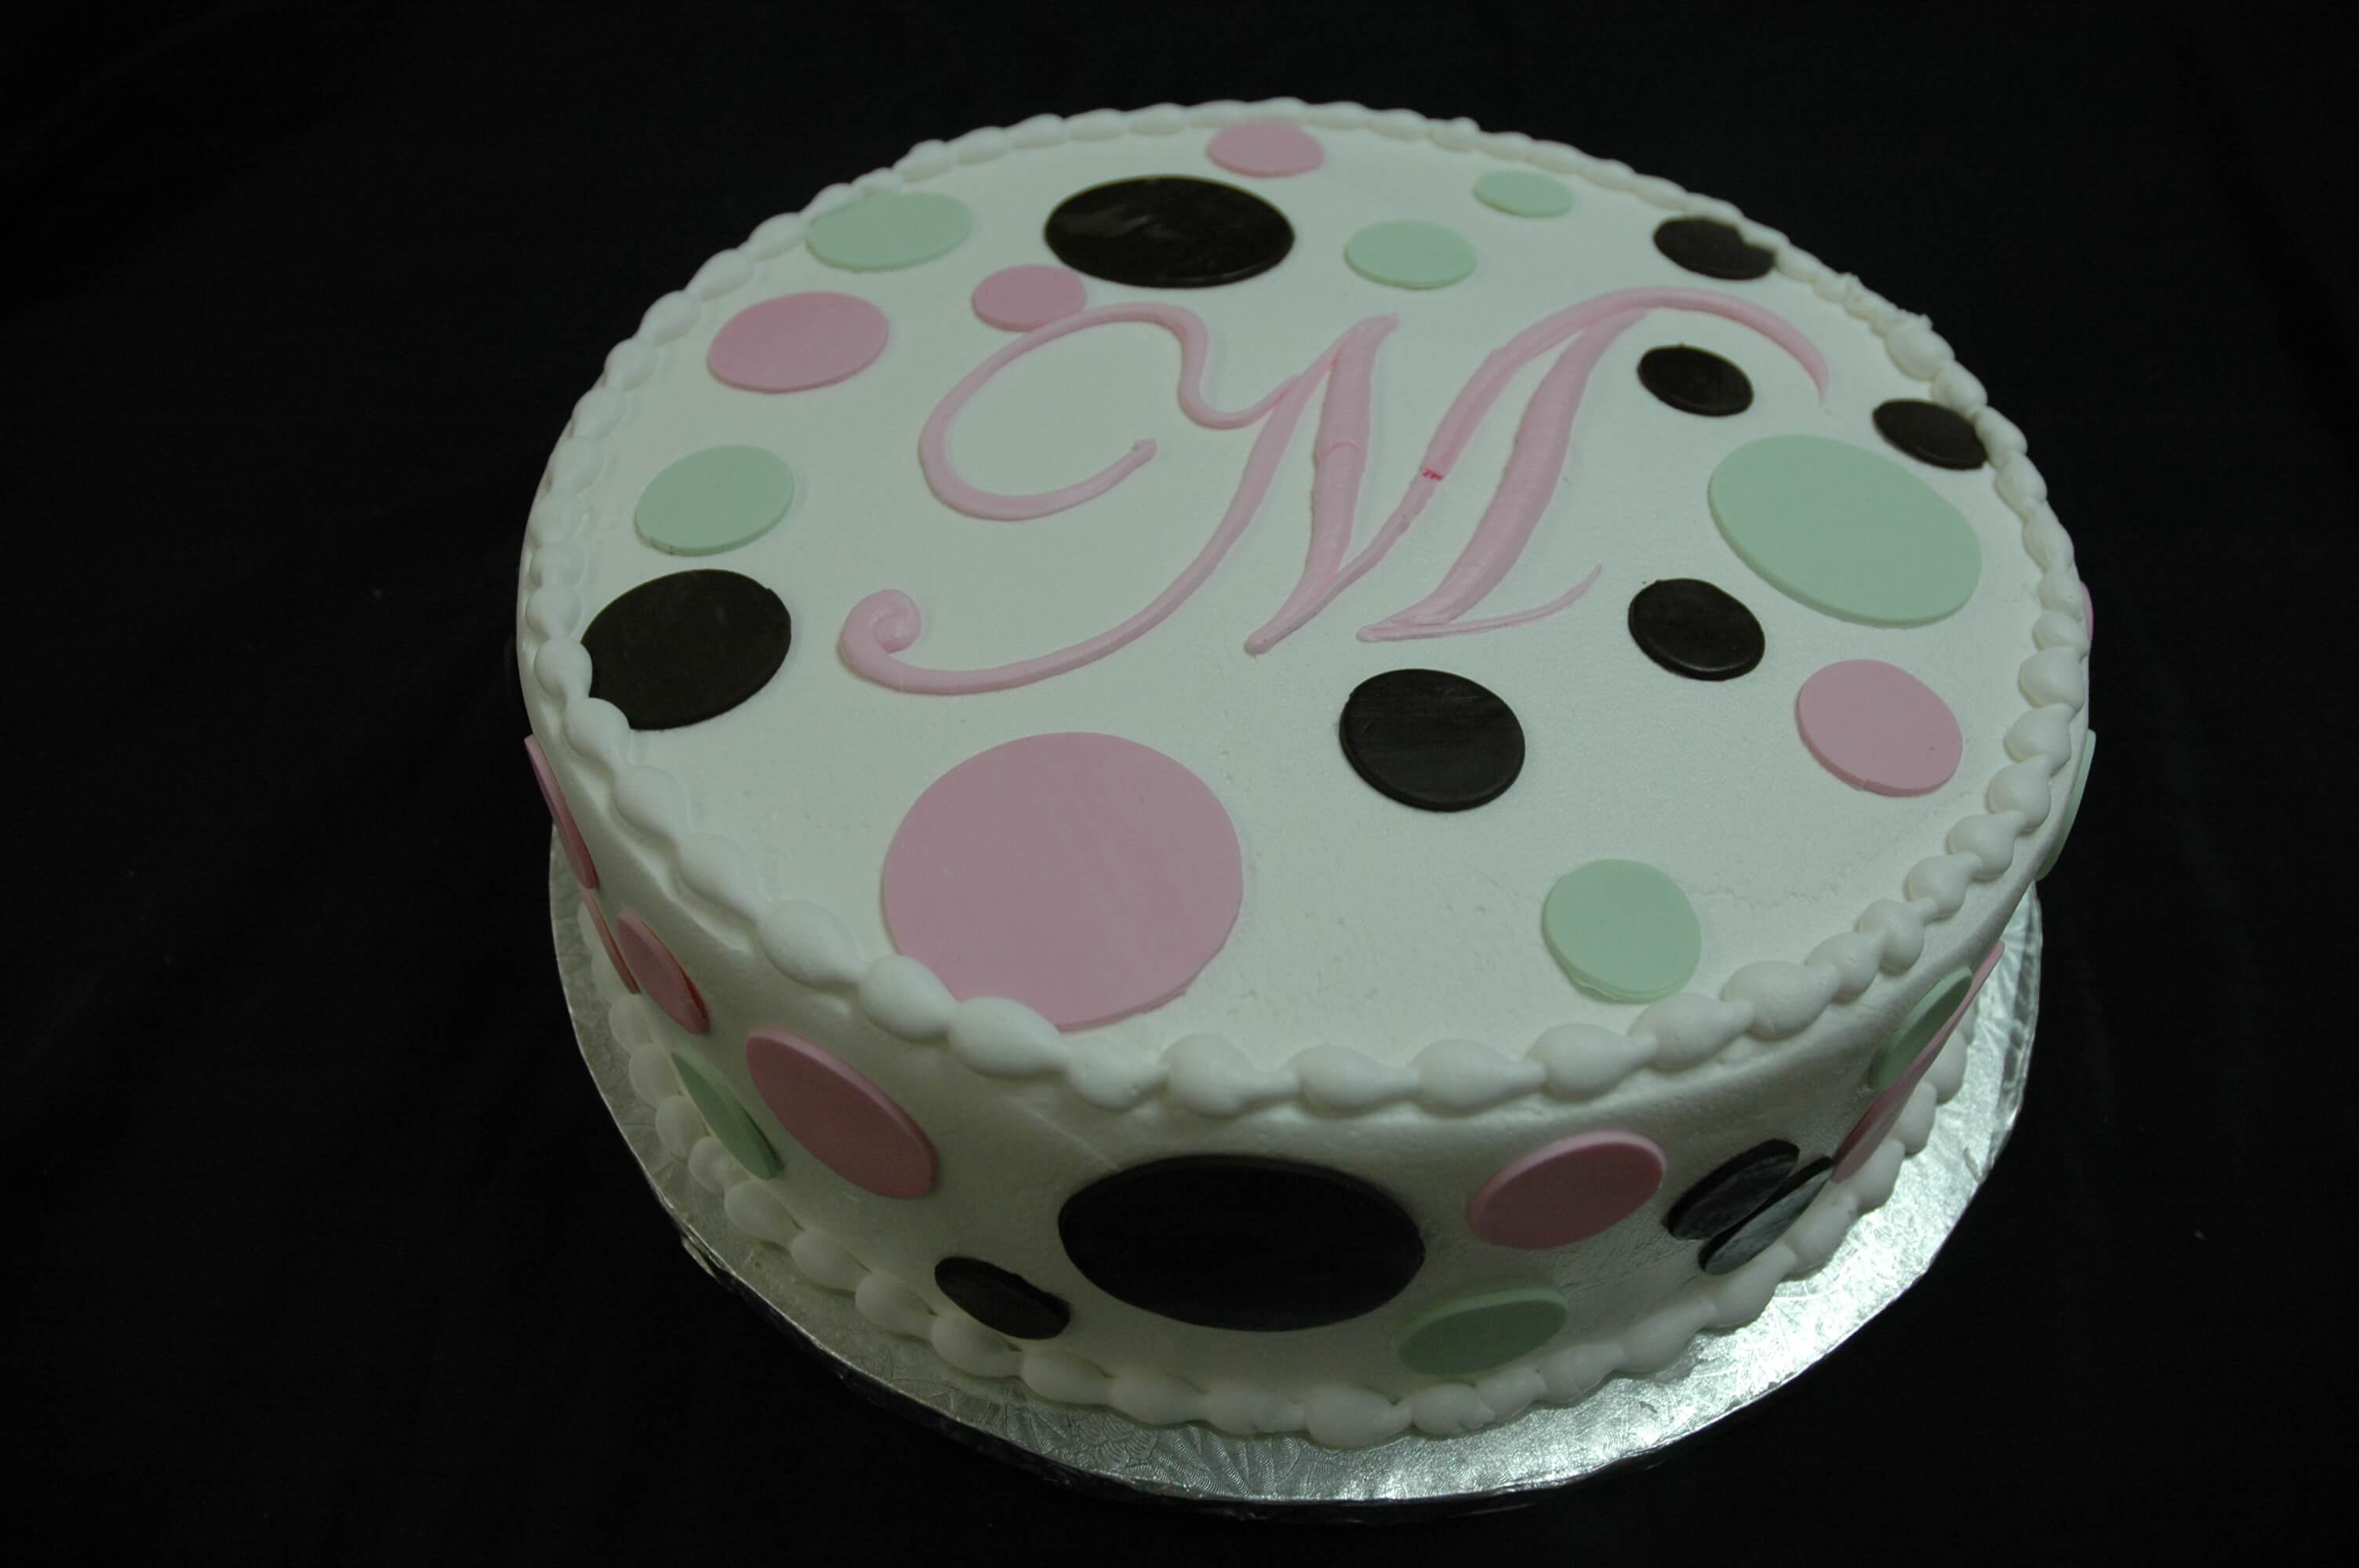 MaArthur's Bakery Custom Cake with Initial and Fondant Dots